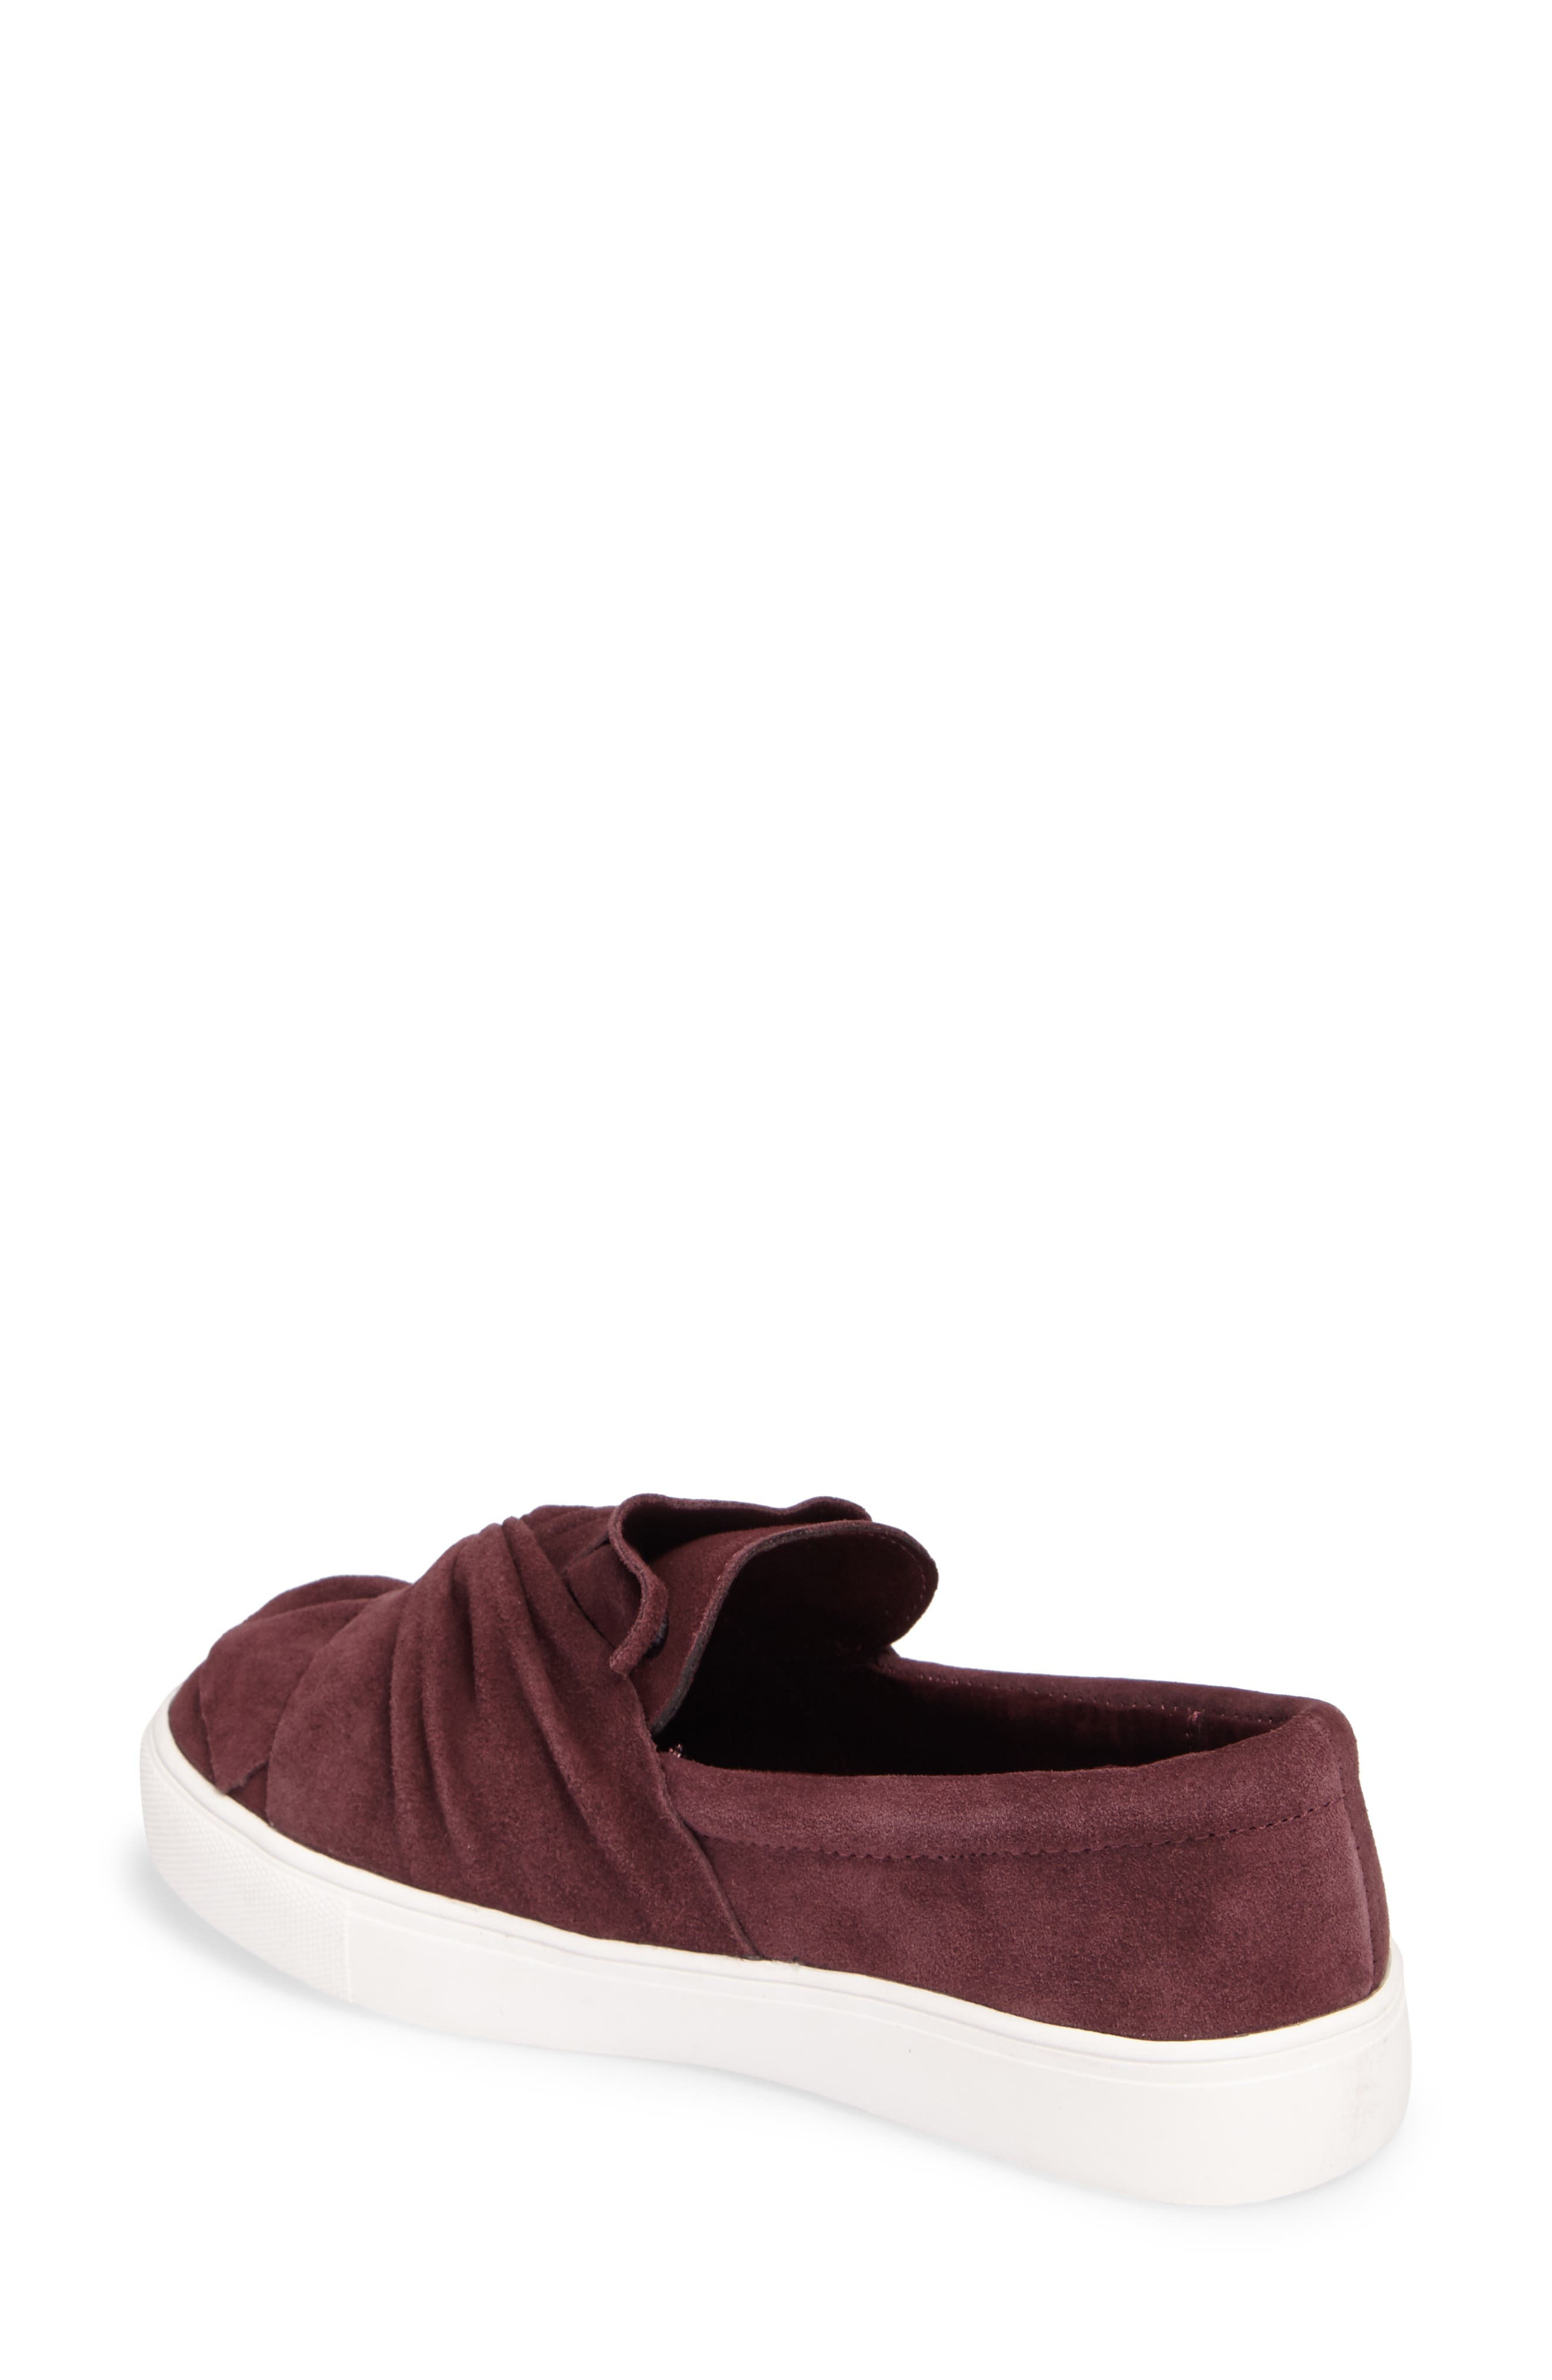 Alternate Image 2  - MIA Zahara Slip-On Sneaker (Women)